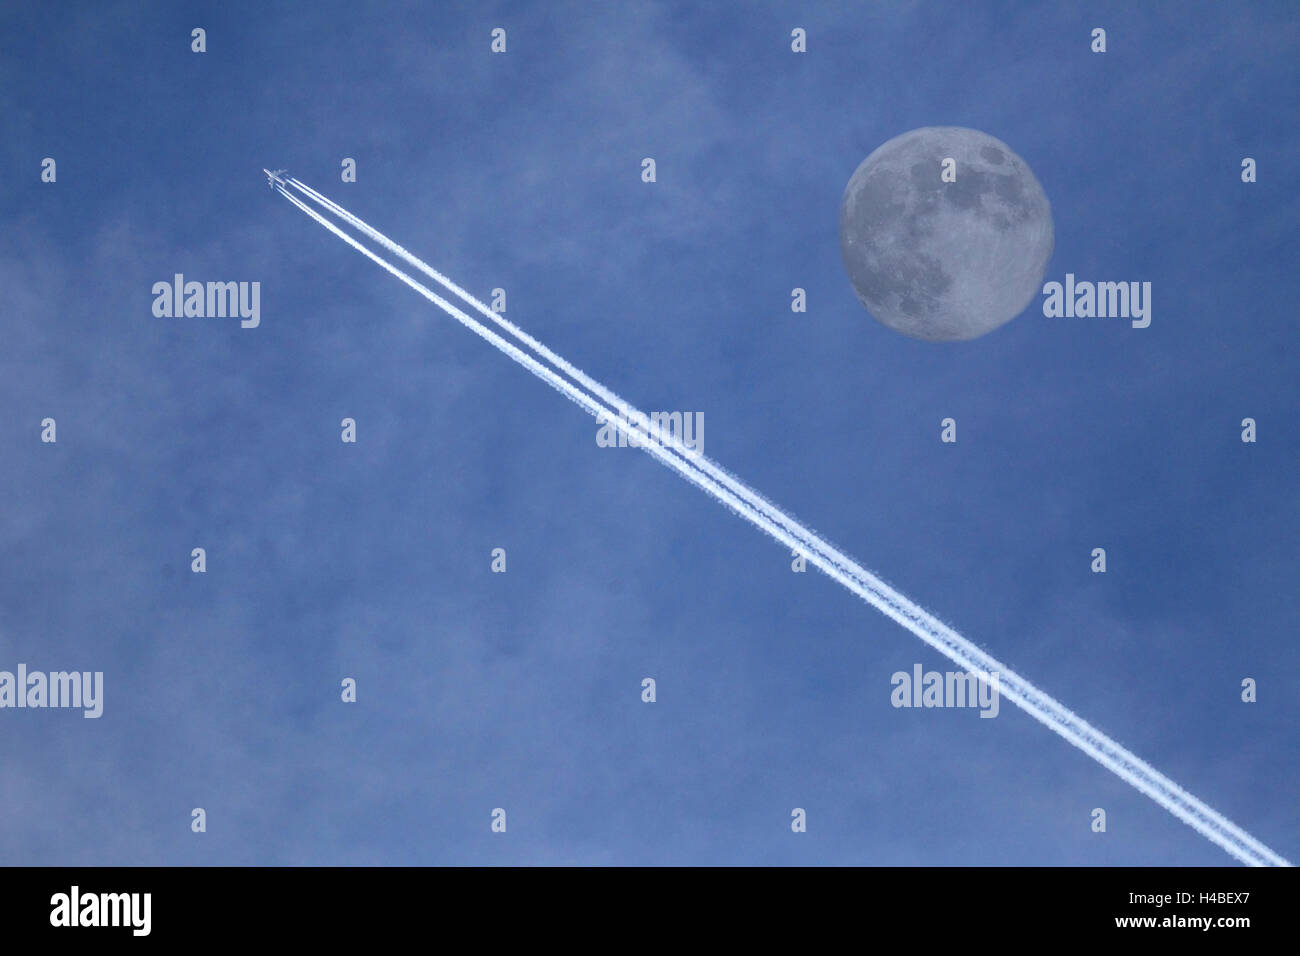 Jet plane with condensation strips and moon [M] - Stock Image